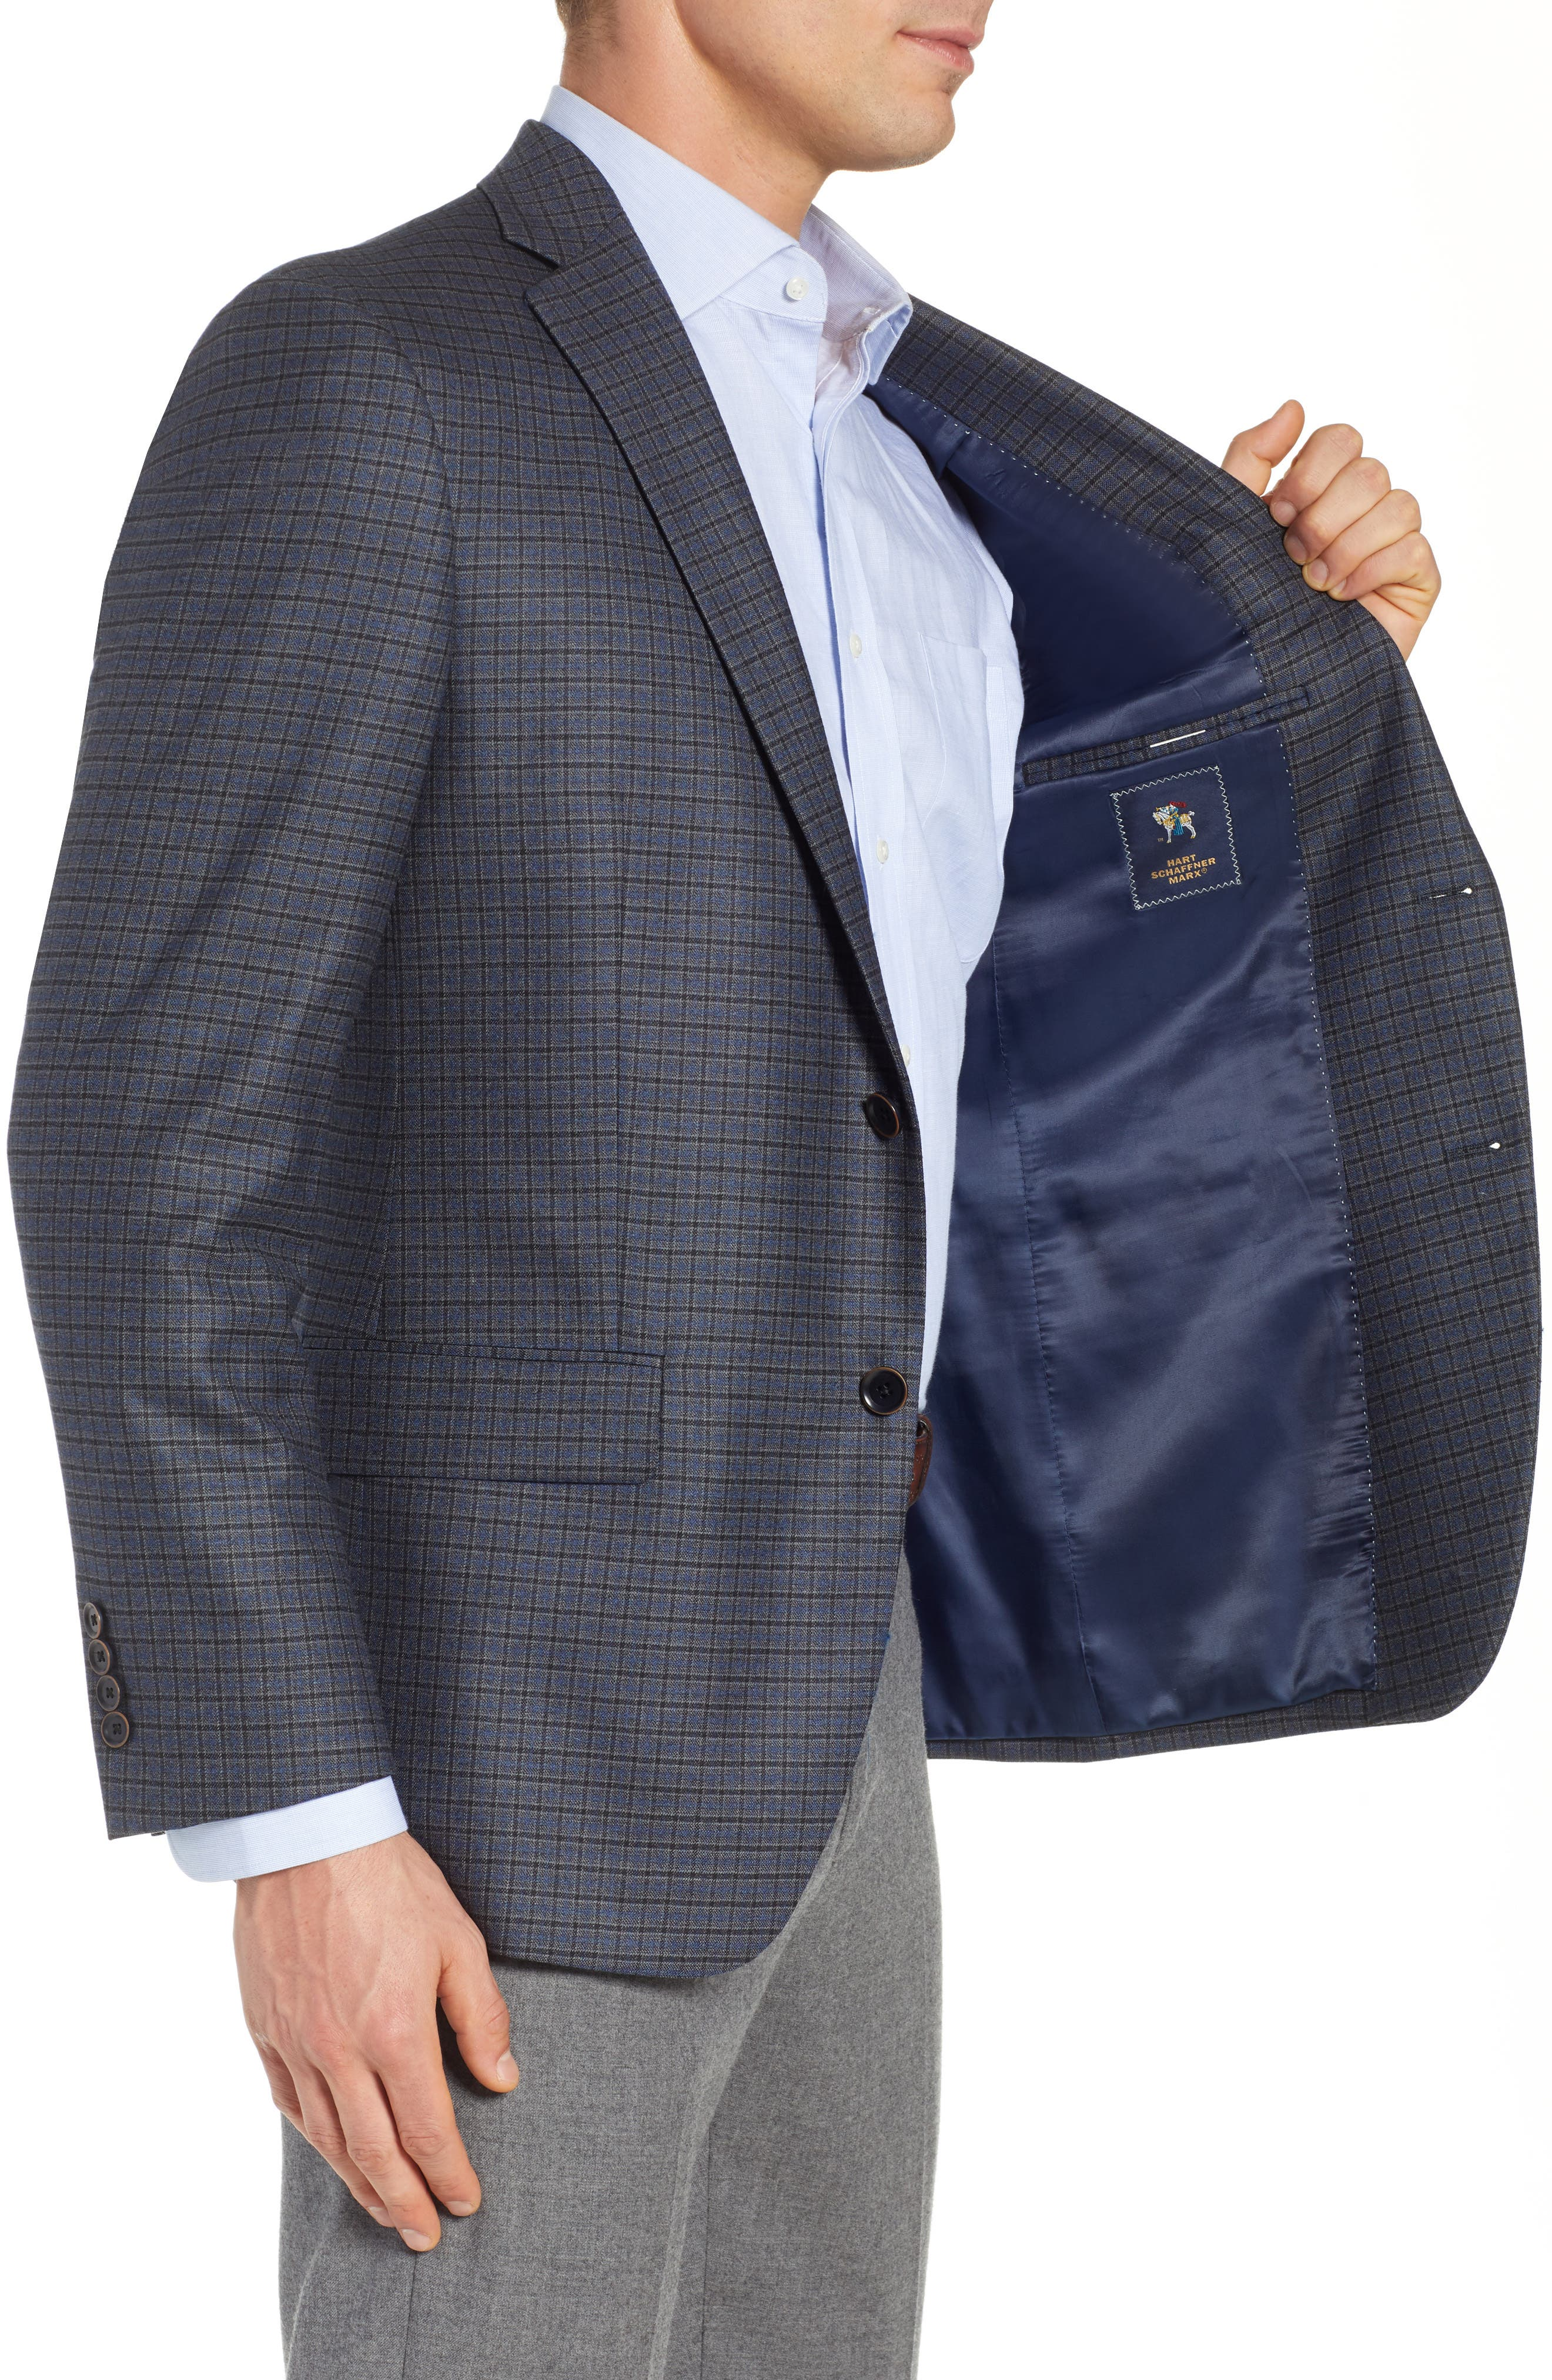 HART SCHAFFNER MARX,                             Classic Fit Stretch Check Wool Sport Coat,                             Alternate thumbnail 4, color,                             420